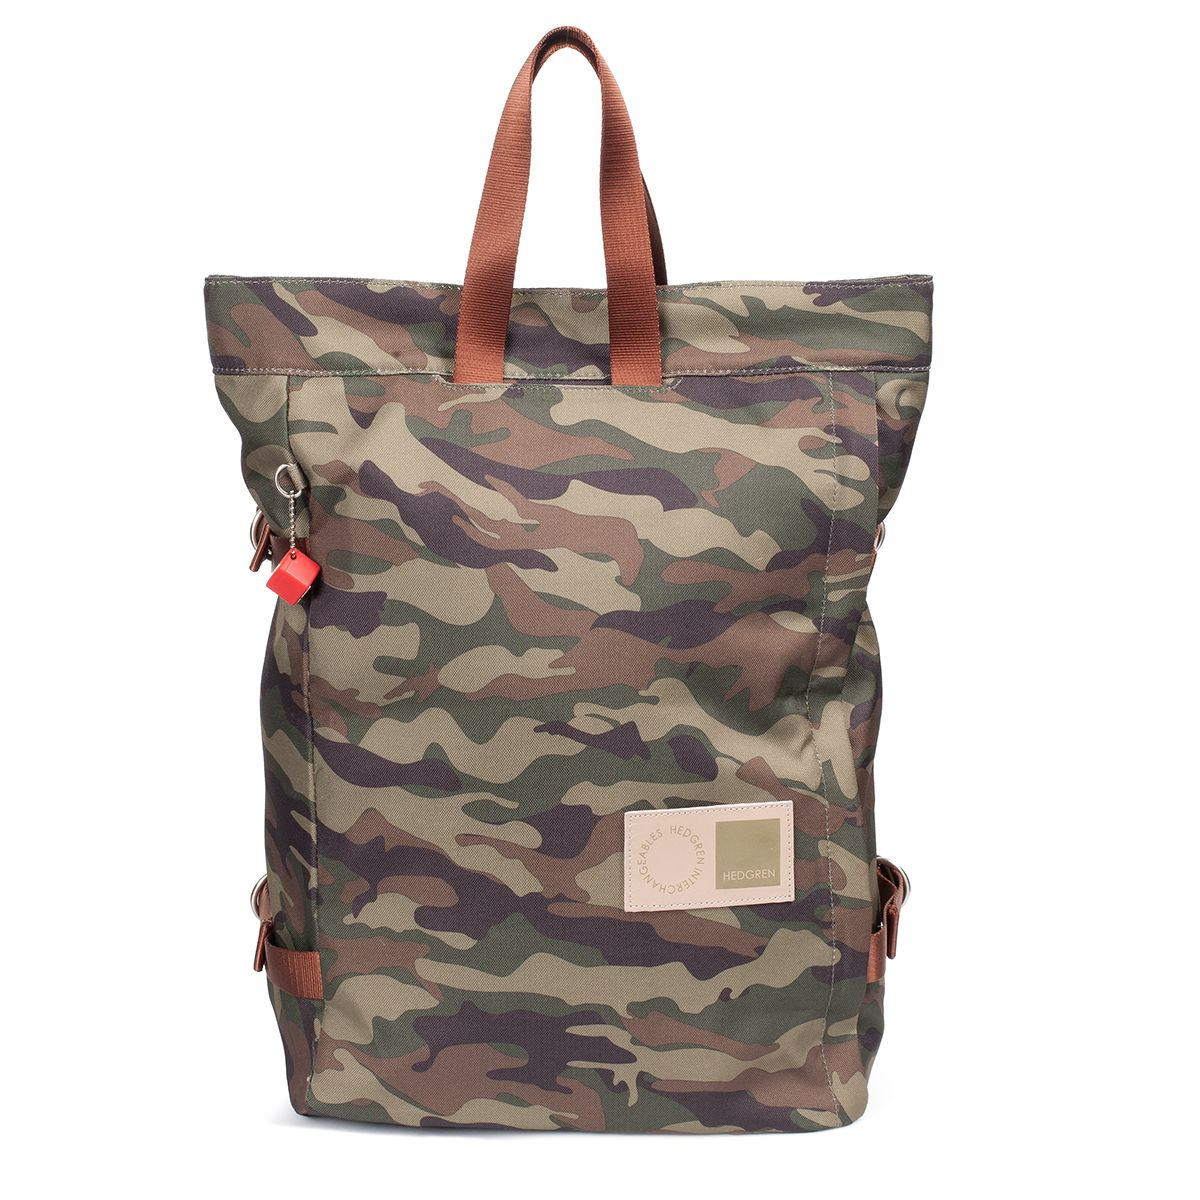 Hedgren Interchangeables Collection Ss14 The Outer Tote In Niion Hipbag Camo Navy Camouflage